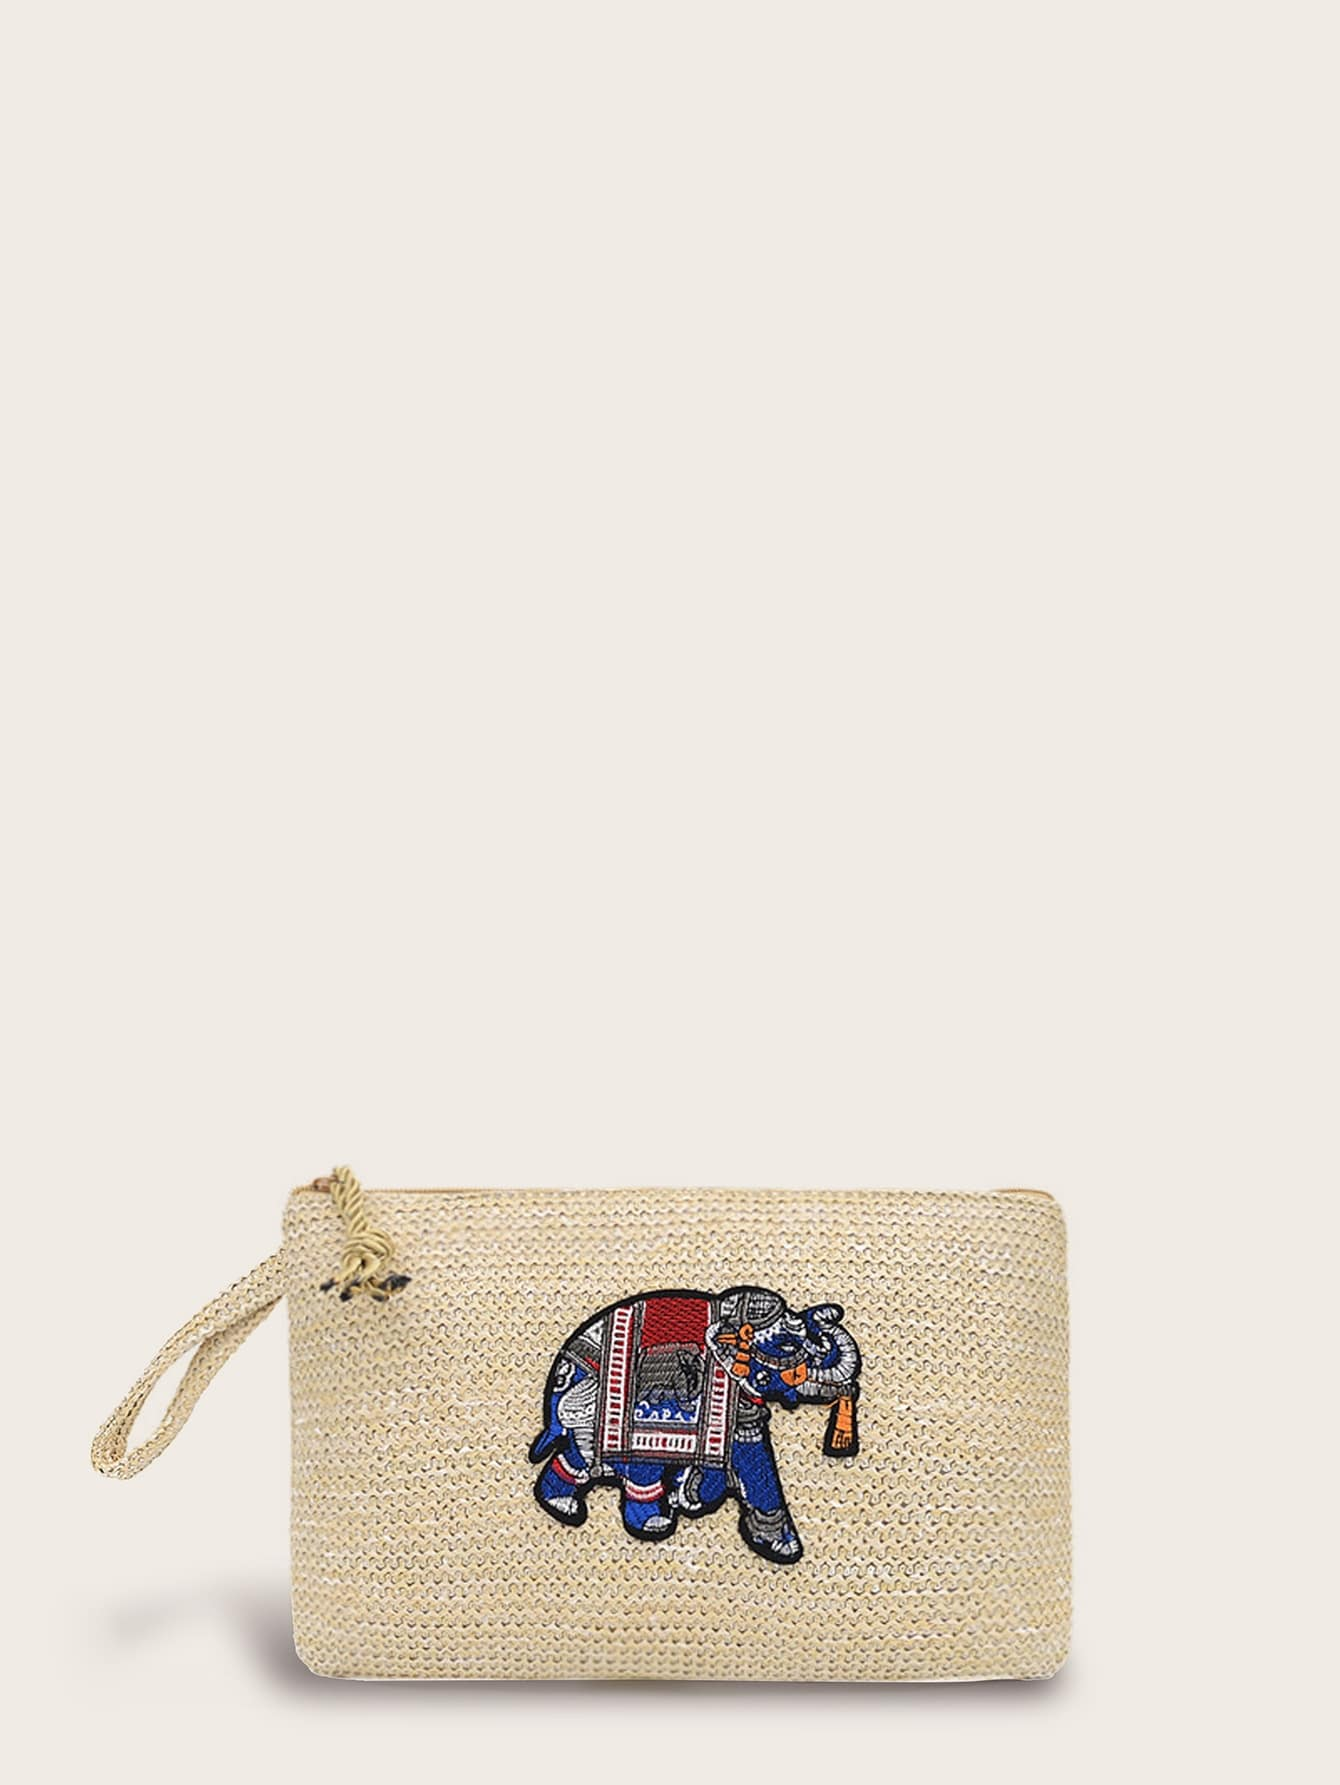 Embroidered Elephant Patch Decor Woven Purse